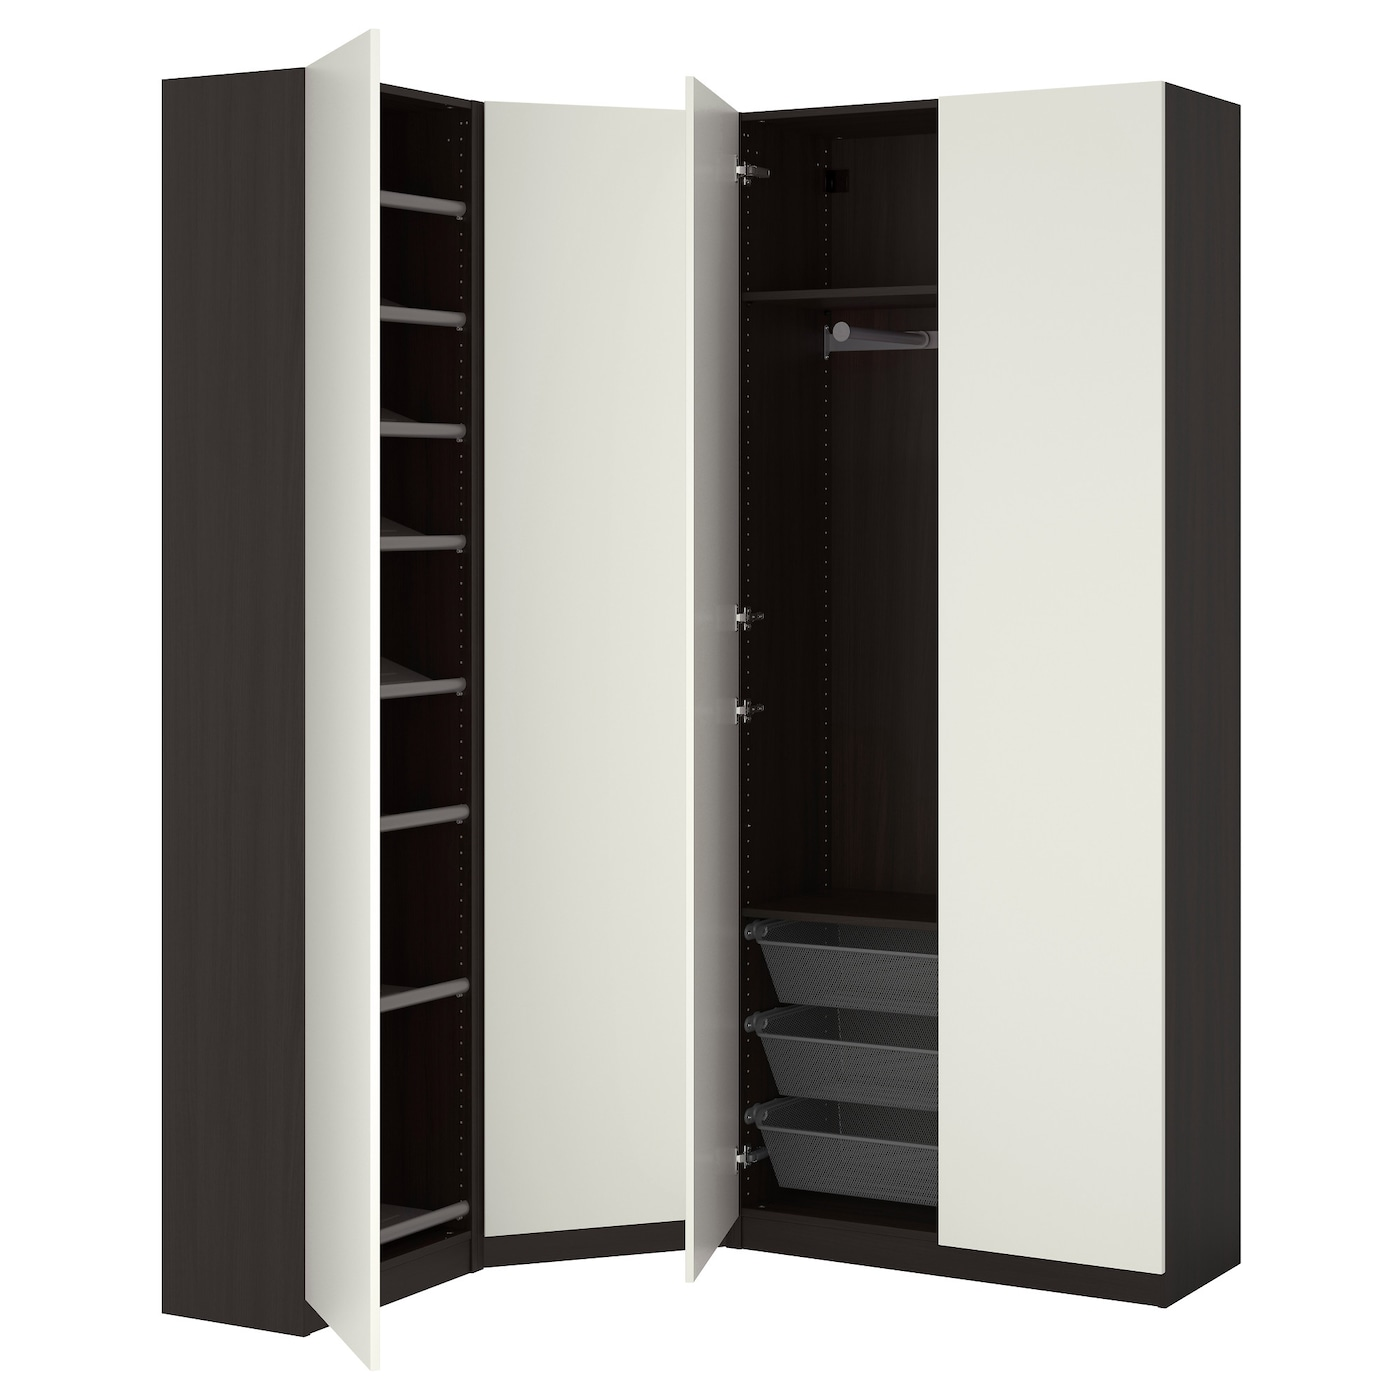 pax wardrobe black brown ballstad white 123 173x38x236 cm ikea. Black Bedroom Furniture Sets. Home Design Ideas